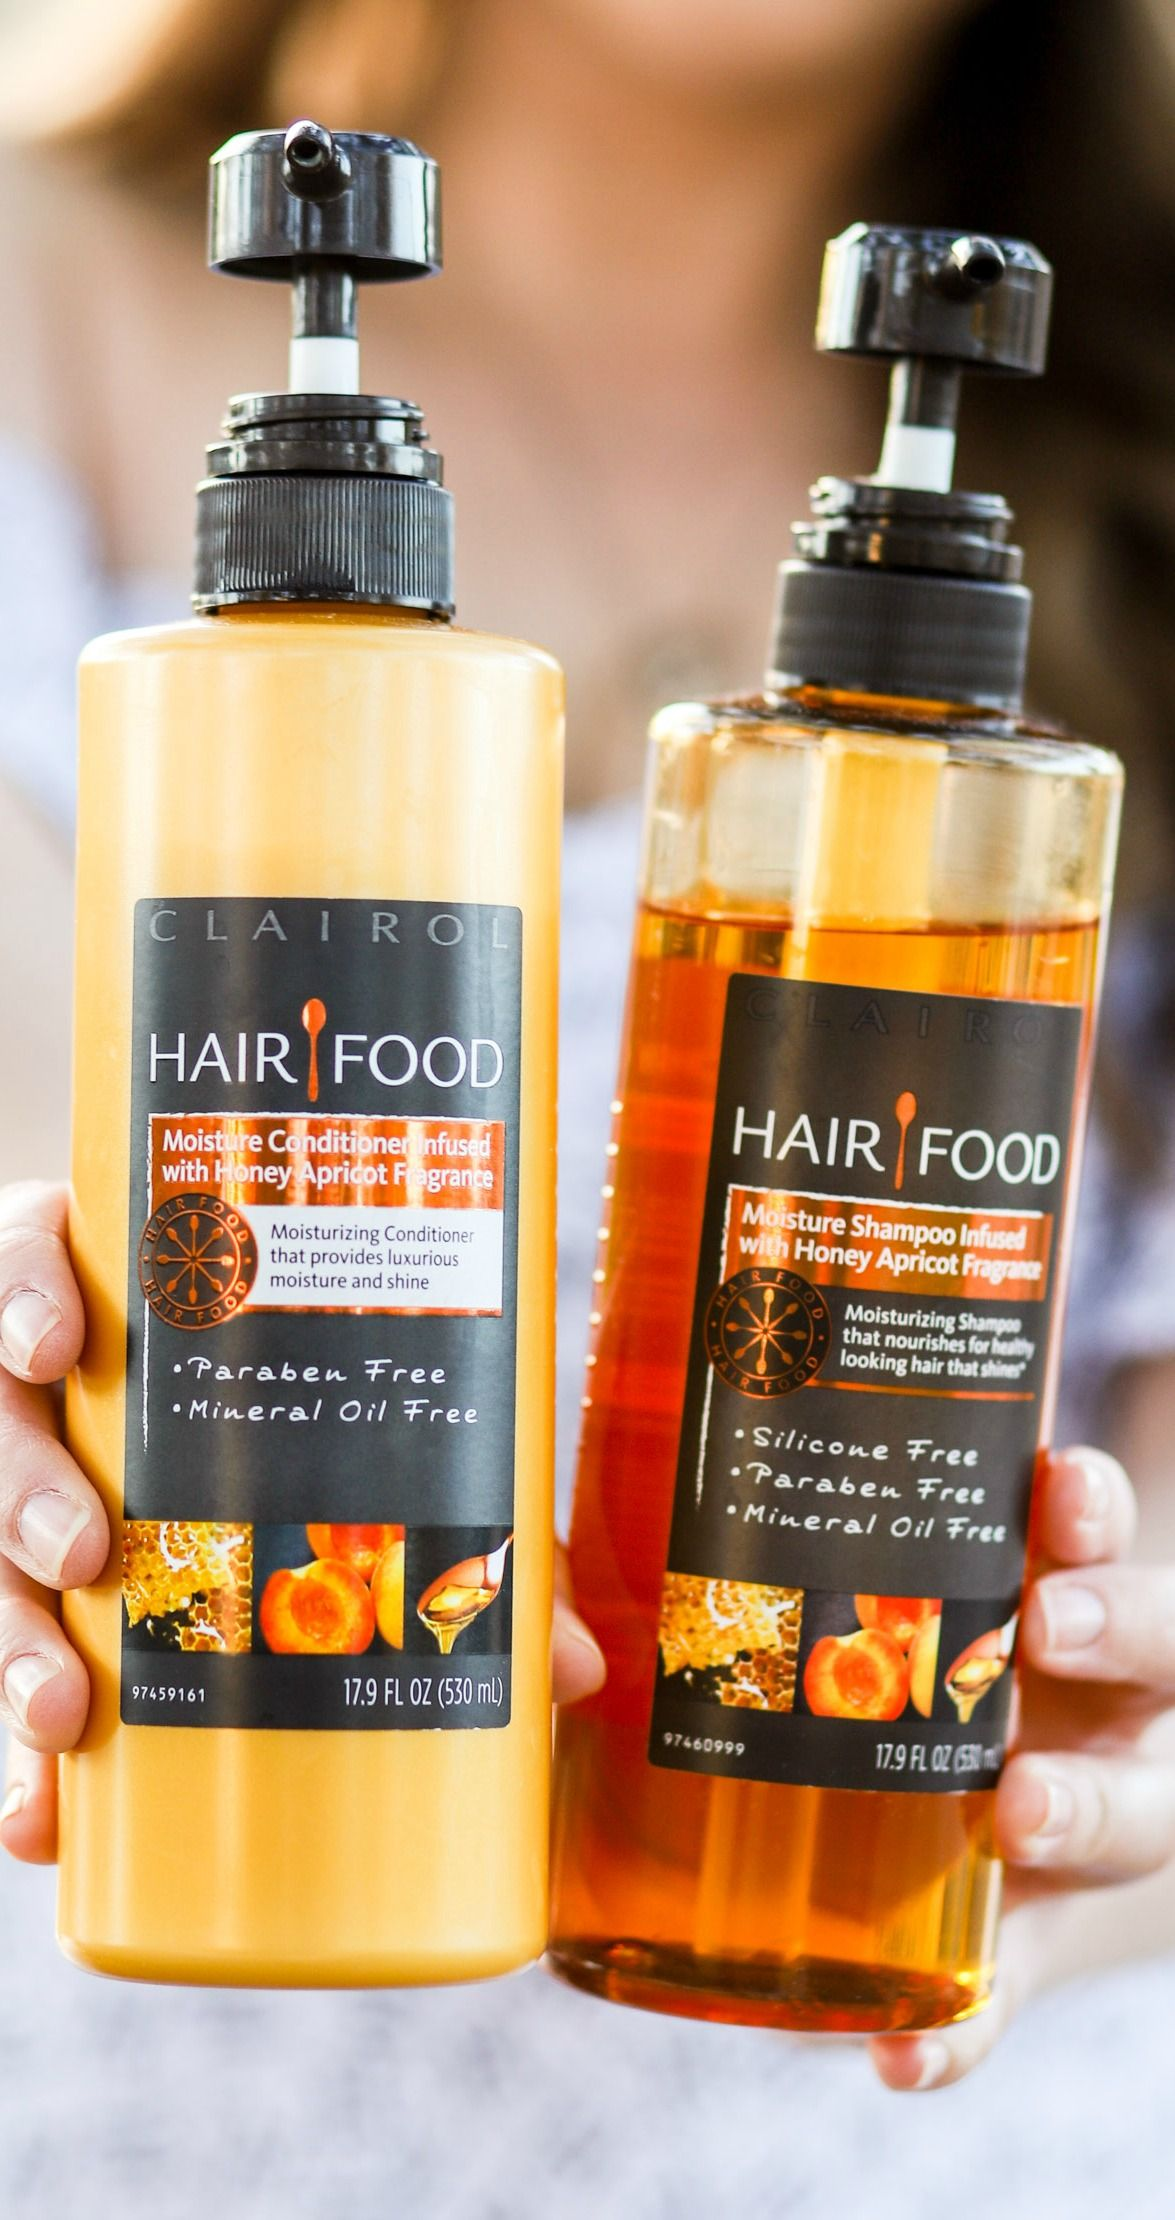 Looking For The Best Drugstore Shampoo And Conditioner I Love The